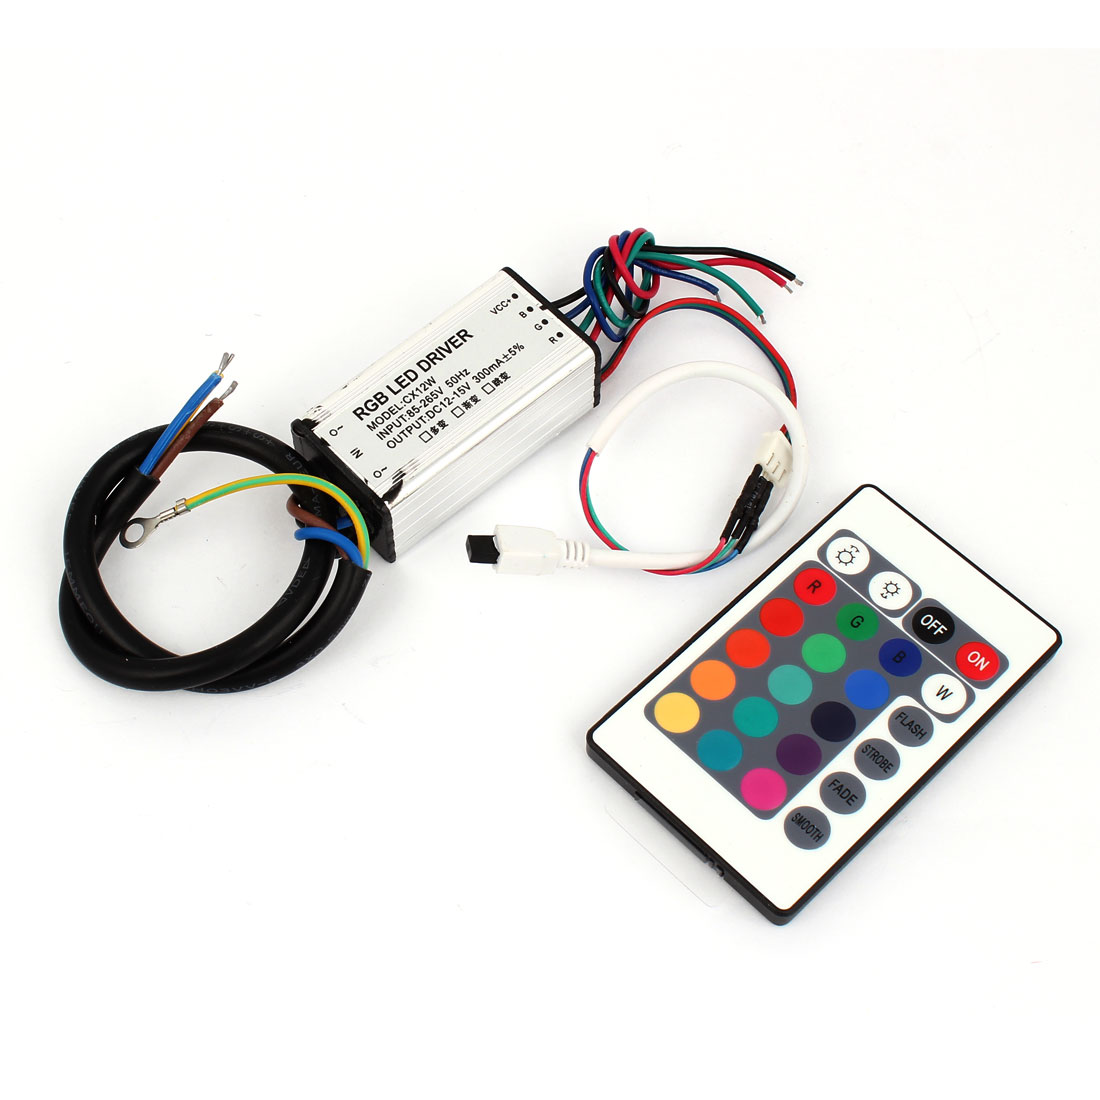 AC 85-265V DC 12-15V Waterproof 12W LED Driver Power Supply Converter w Remote